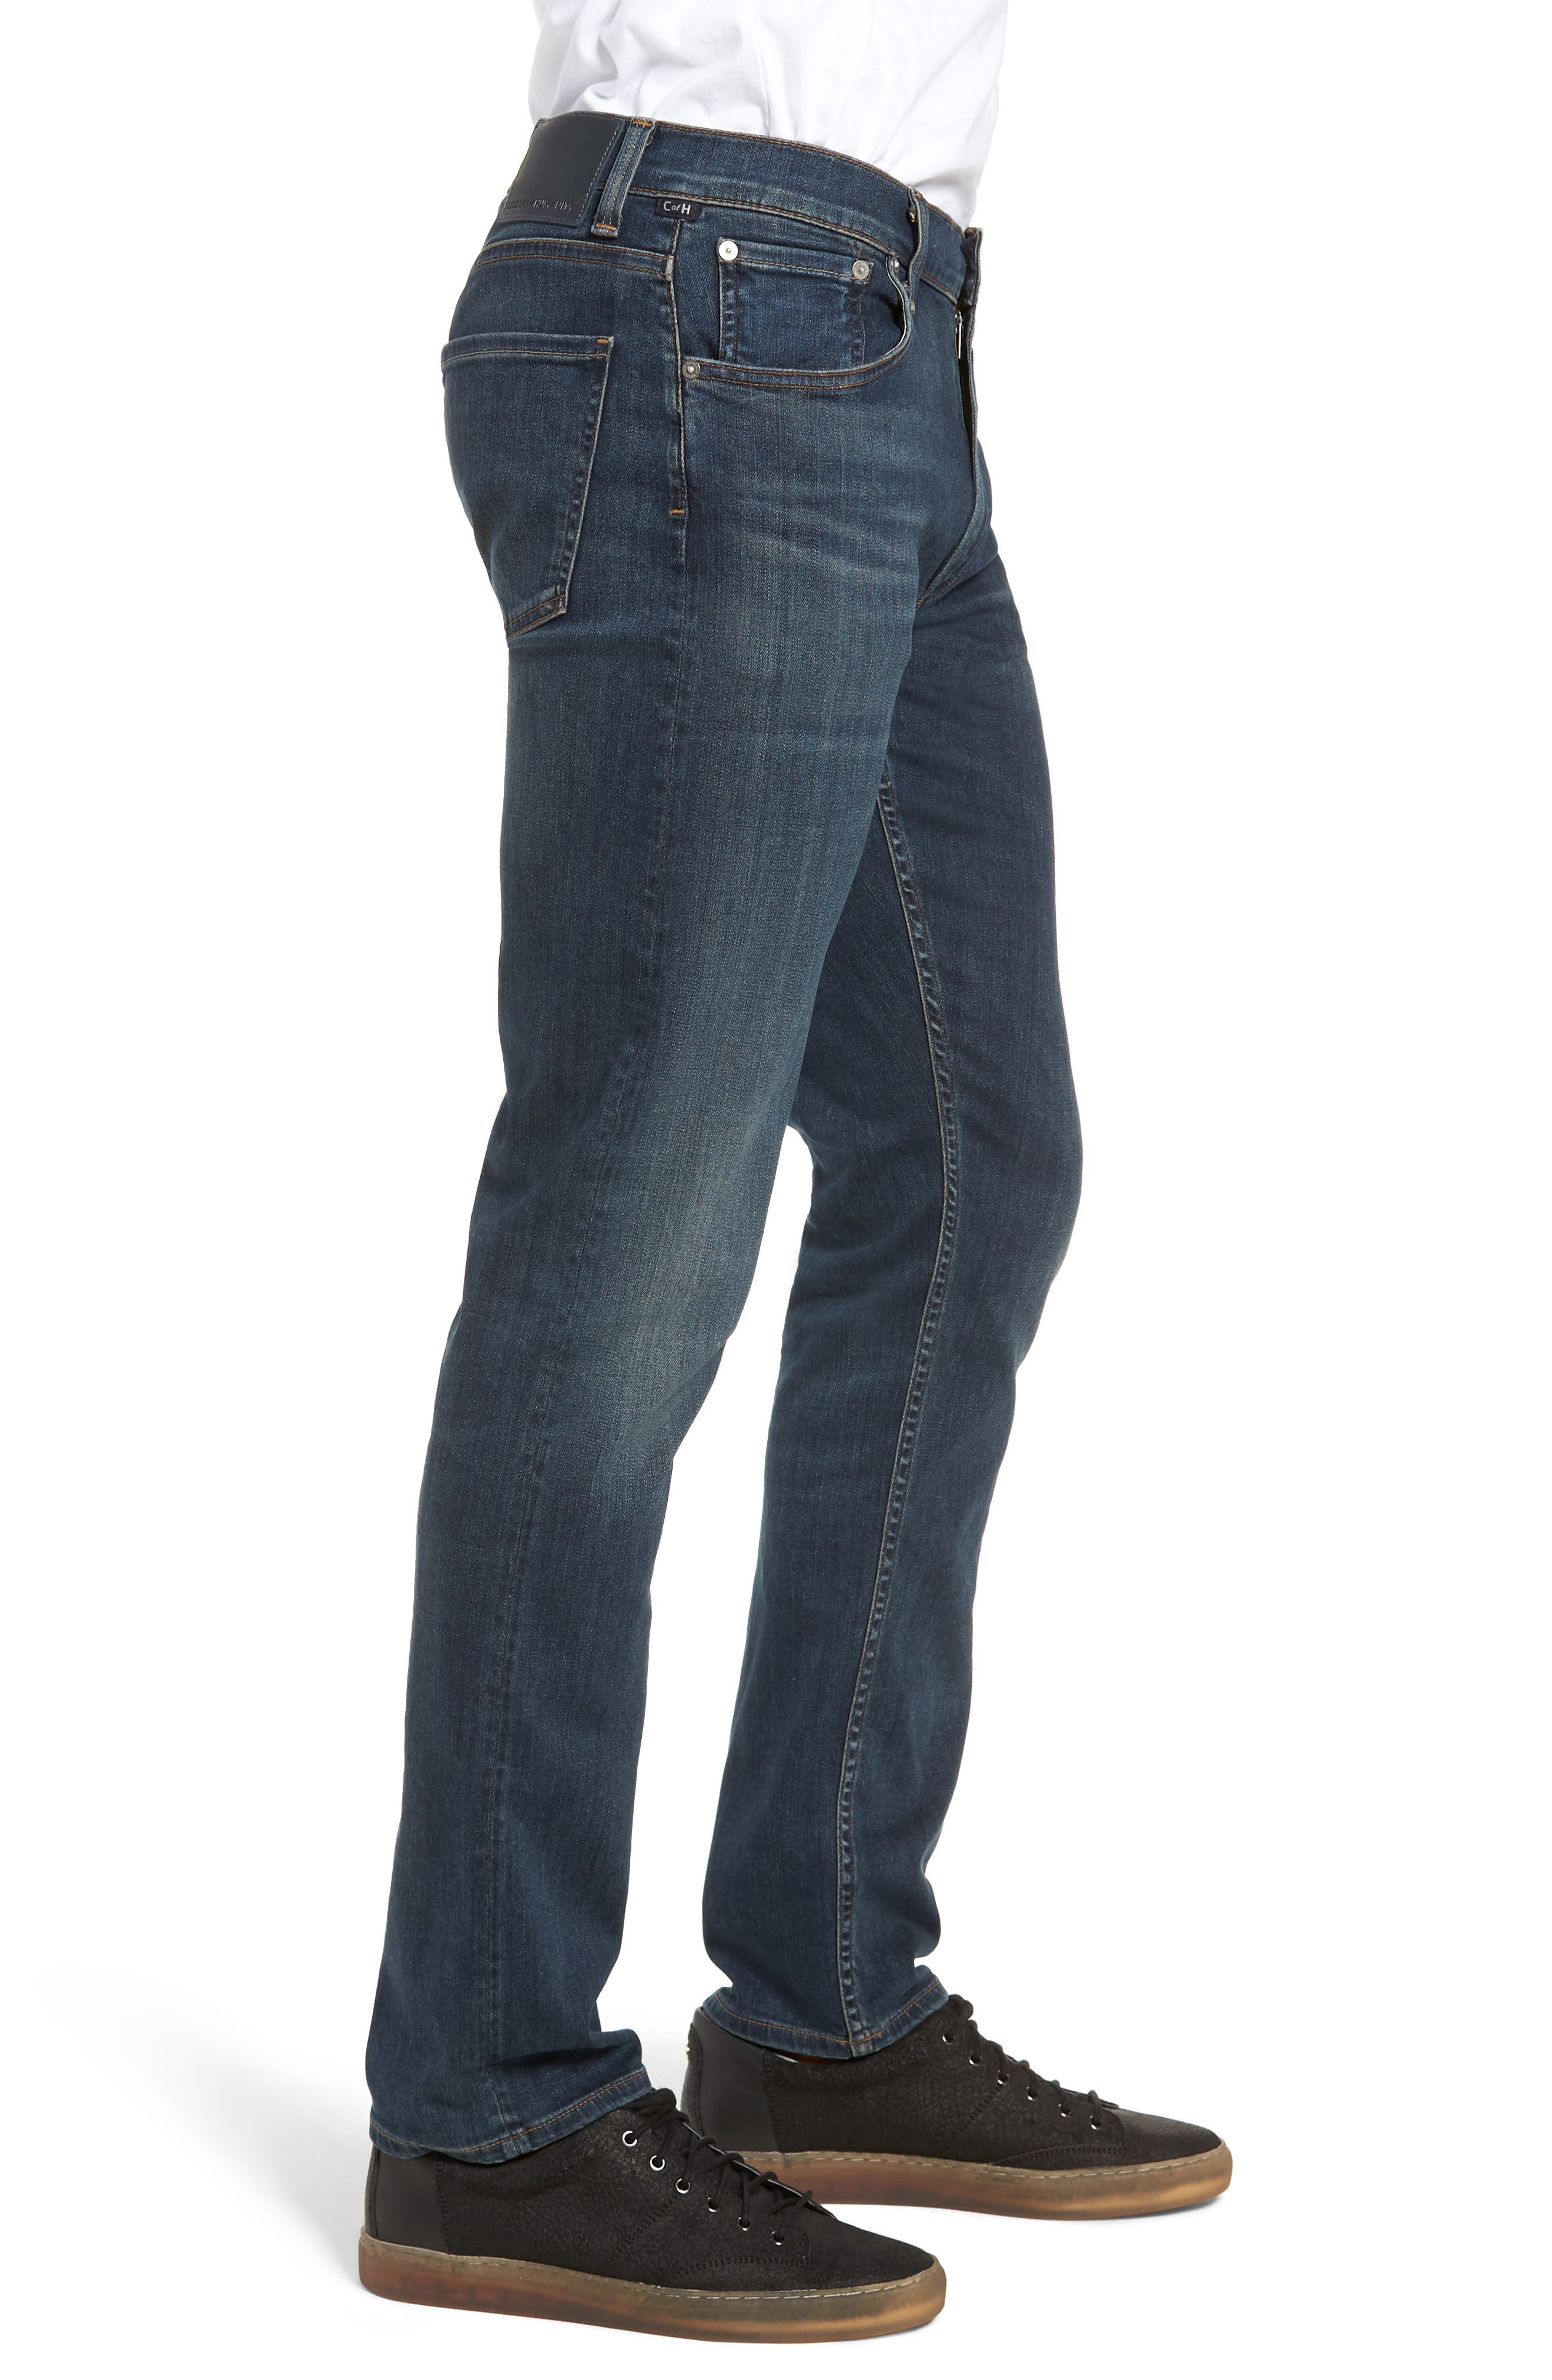 PERFORM - Bowery Slim Fit Jeans,                             Alternate thumbnail 3, color,                             424